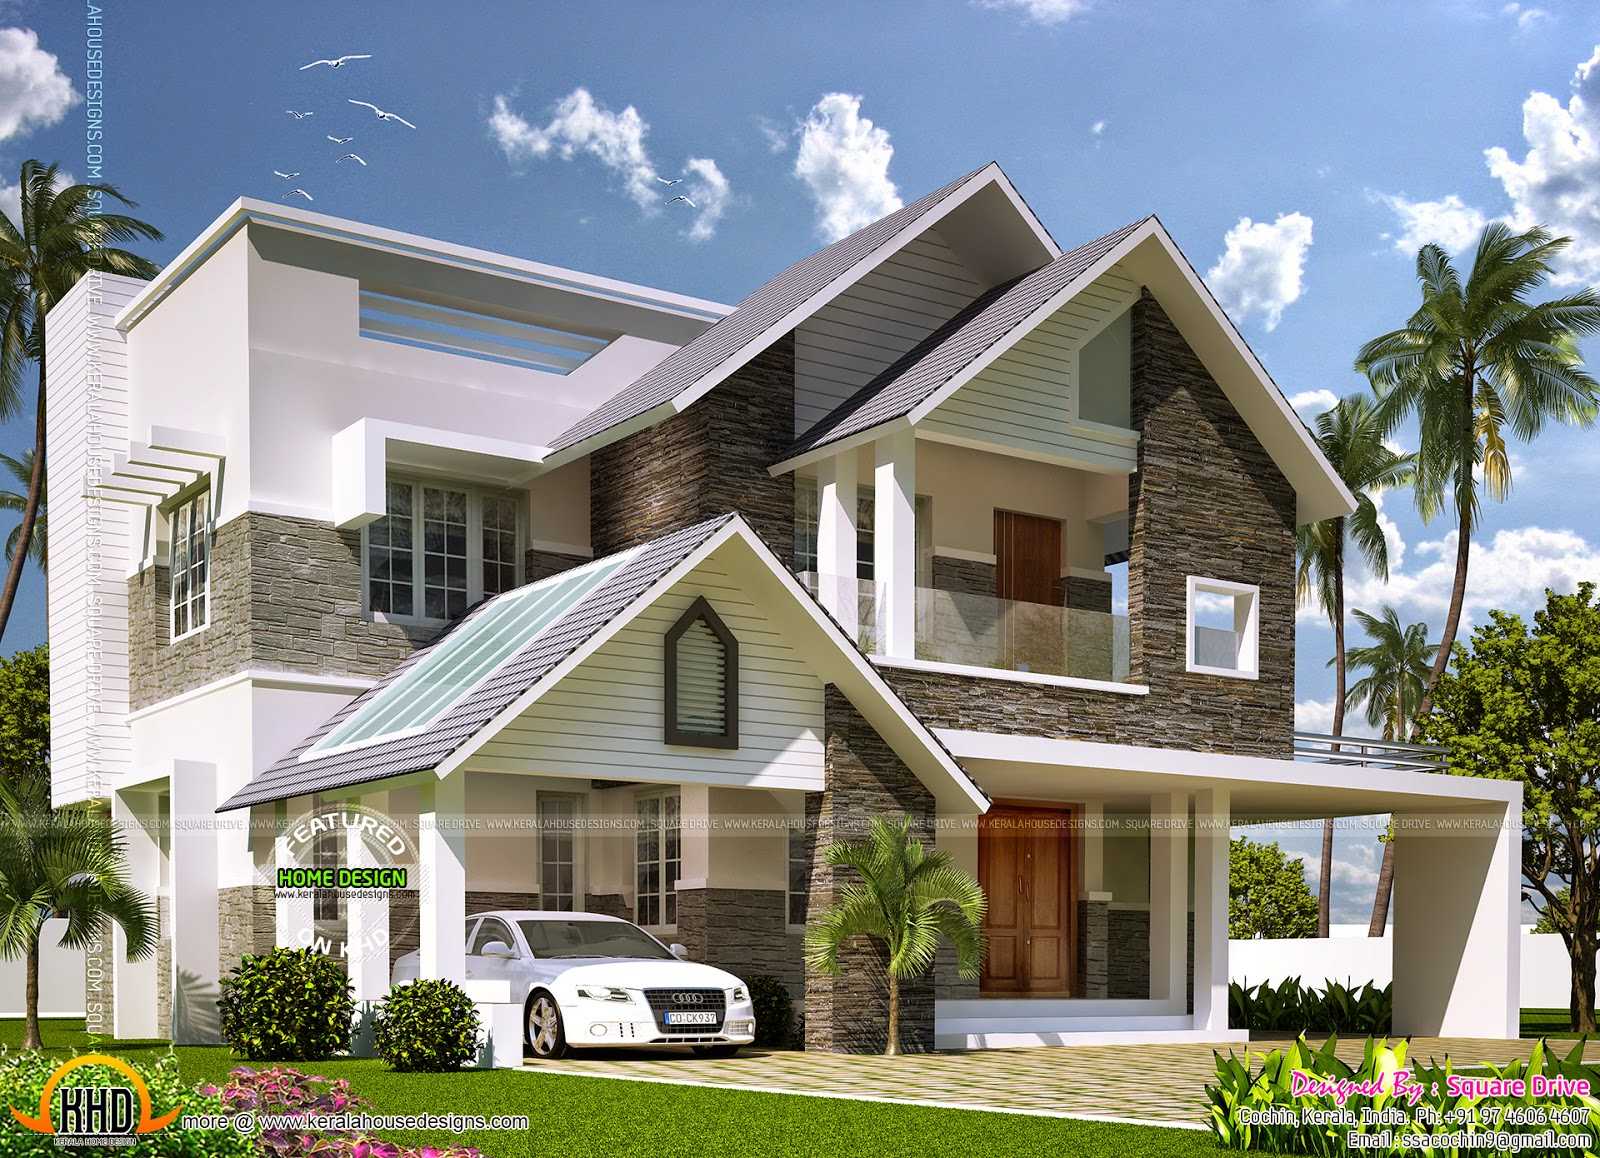 Modern sloping roof mix villa exterior kerala home for Modern home styles designs